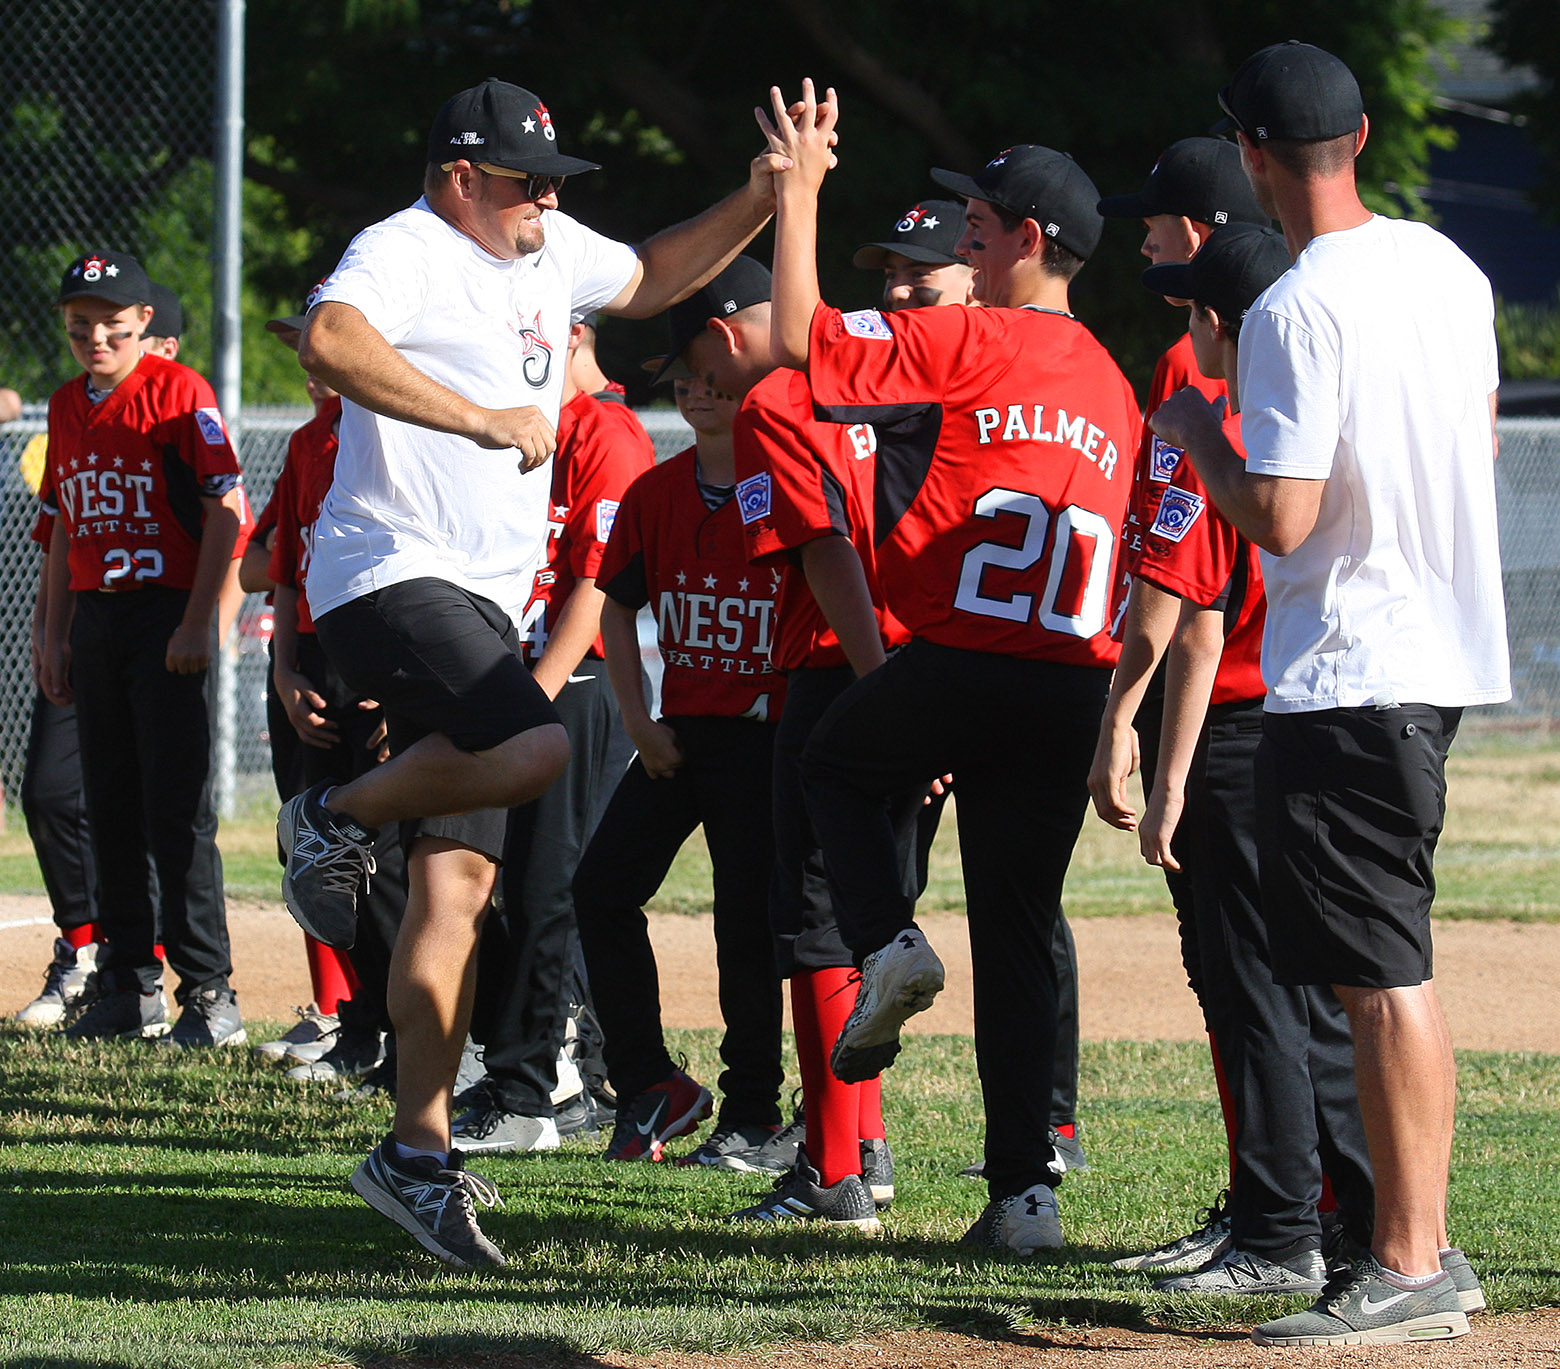 During team introductions a West Seattle coach gets in a high five and leaps for joy.